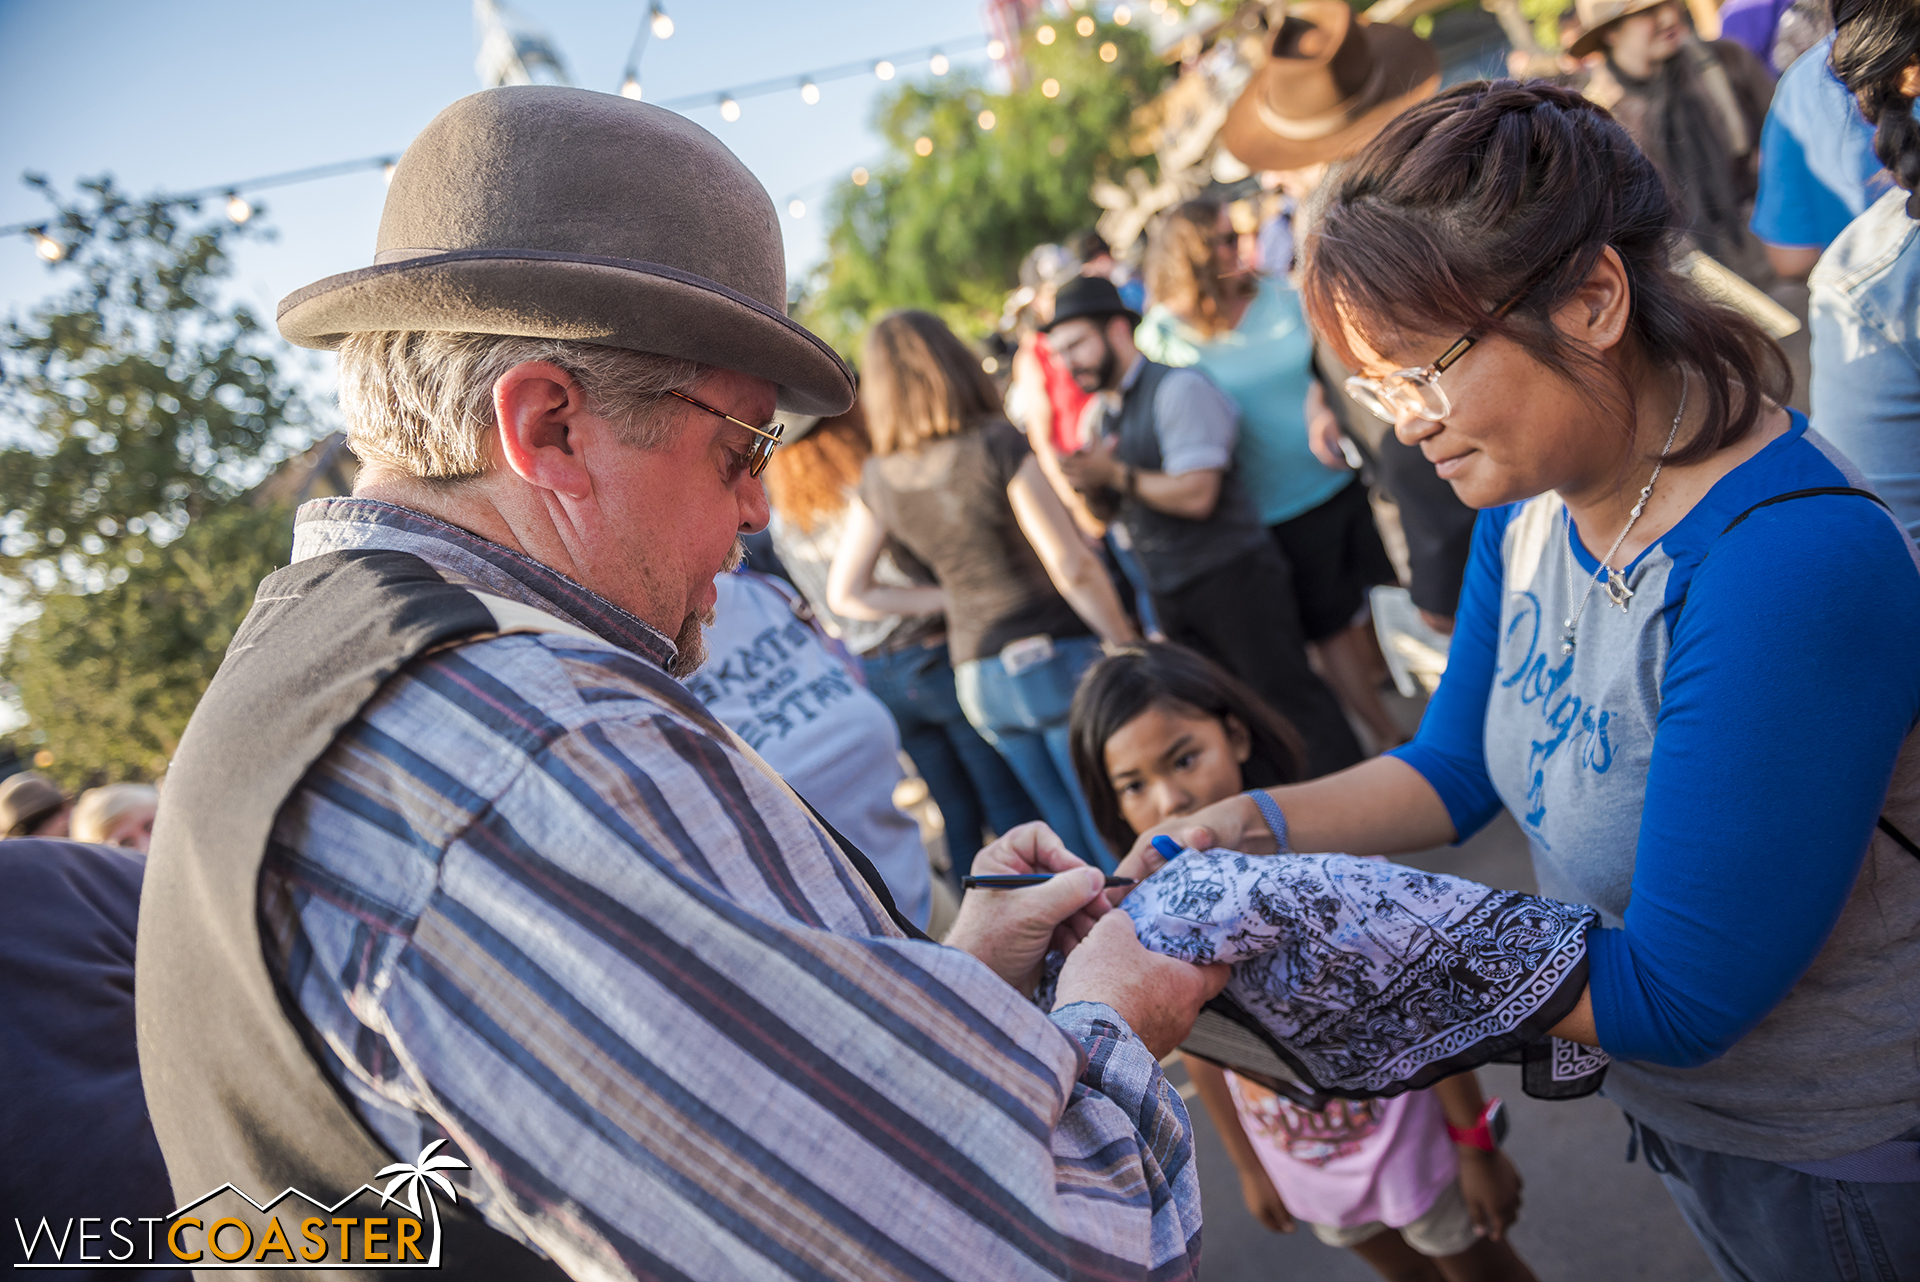 Others have Knott's Ghost Town Alive! merchandise signed for keepsakes.